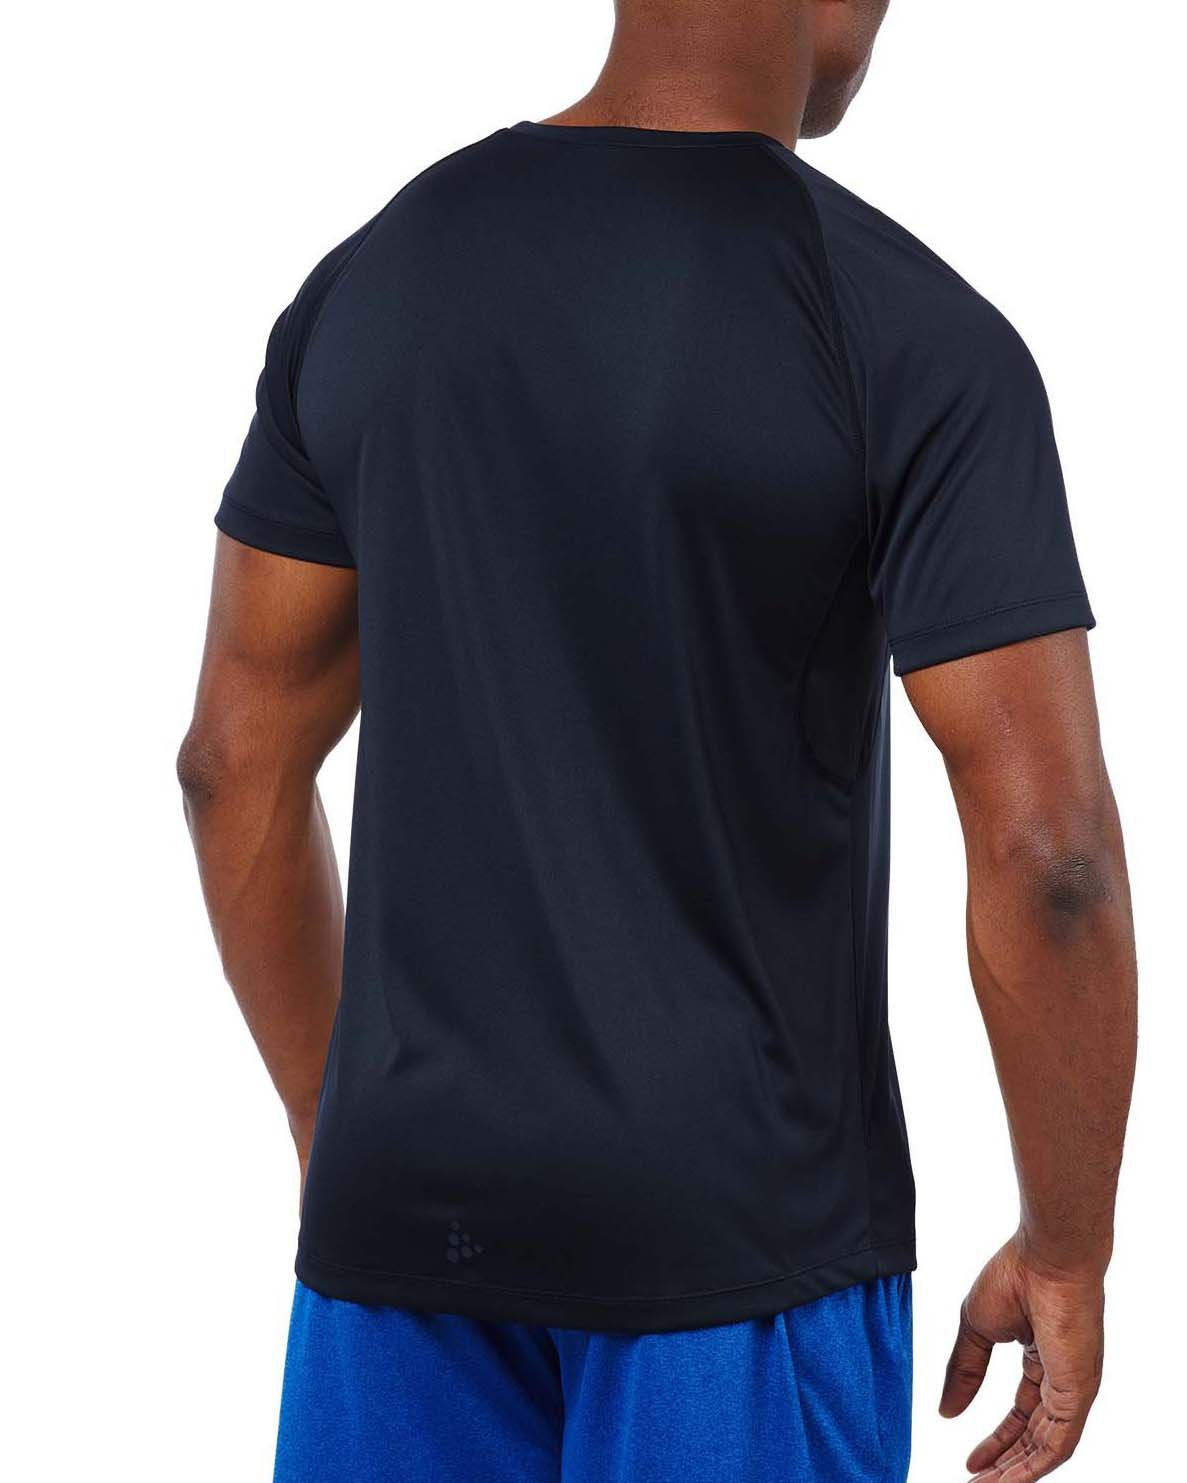 SPARTAN by CRAFT Prime Tee - Men's